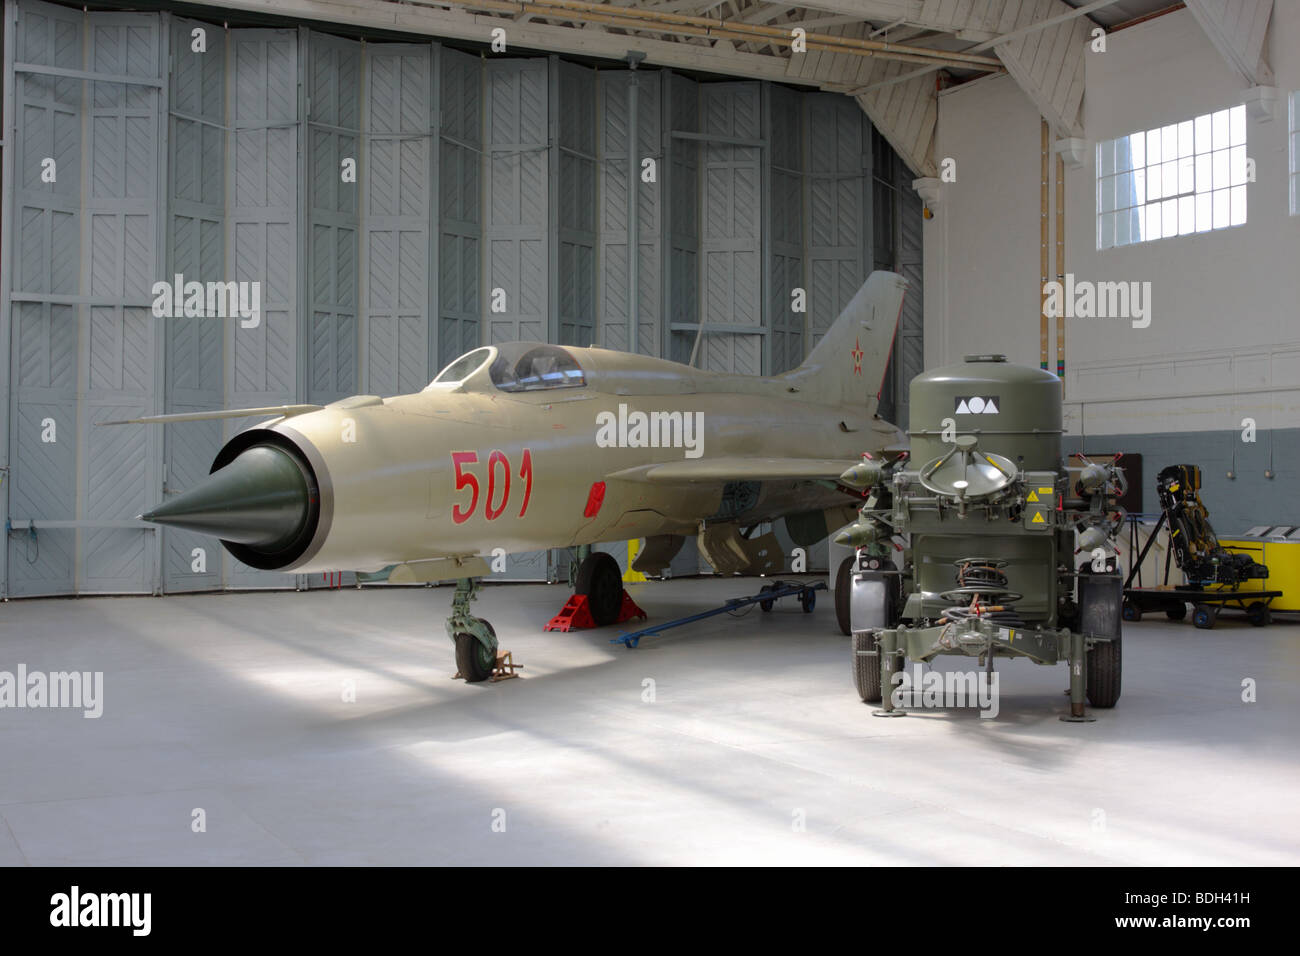 The Mikoyan-Gurevich MiG-21PF jet fighter,currently on permanent display in Hangar 4,IWM Duxford,England. - Stock Image